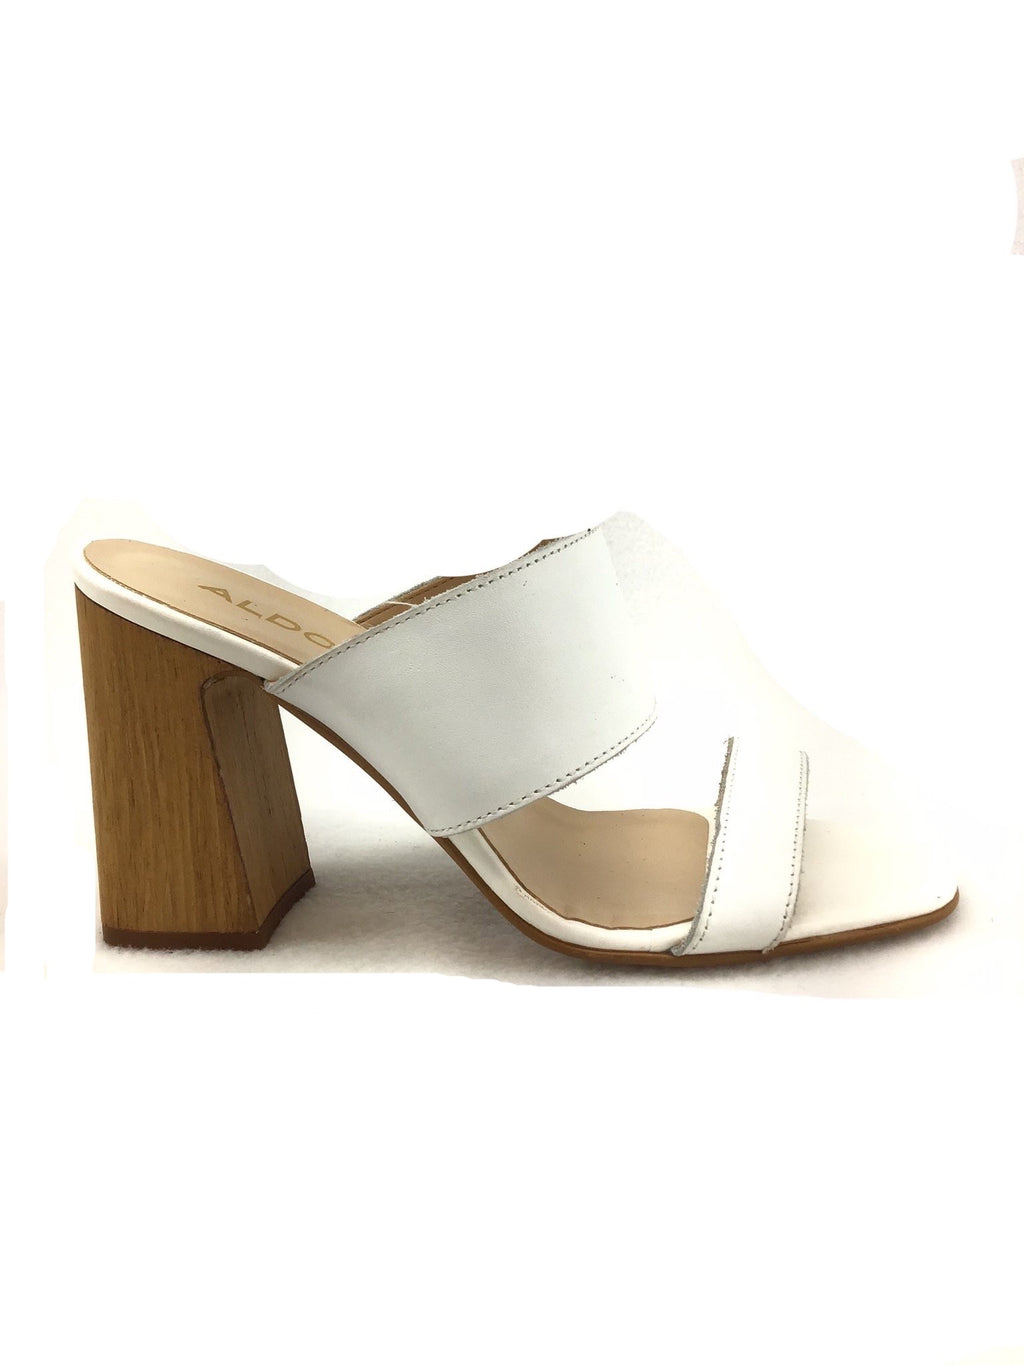 Aldo Wooden Heel Sandals Size 6